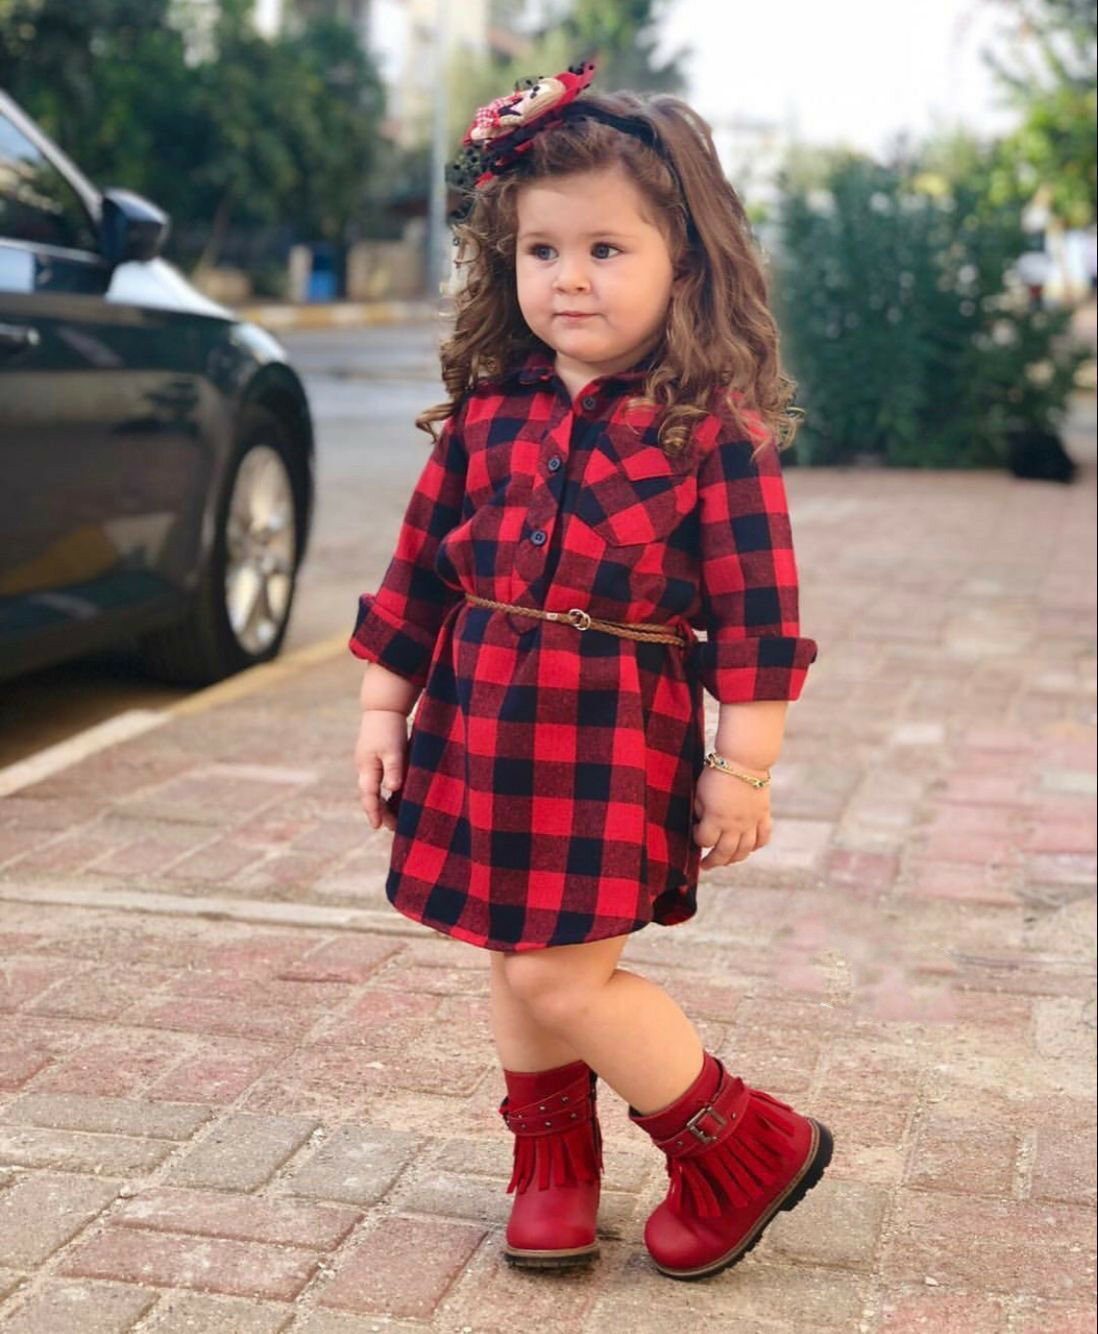 0-5T <font><b>Christmas</b></font> Toddler Newborn Kids Baby <font><b>Girls</b></font> <font><b>Dress</b></font> <font><b>Red</b></font> Plaid Cotton Princess Party <font><b>Long</b></font> <font><b>Sleeve</b></font> <font><b>Dress</b></font> Clothes <font><b>Girl</b></font> image